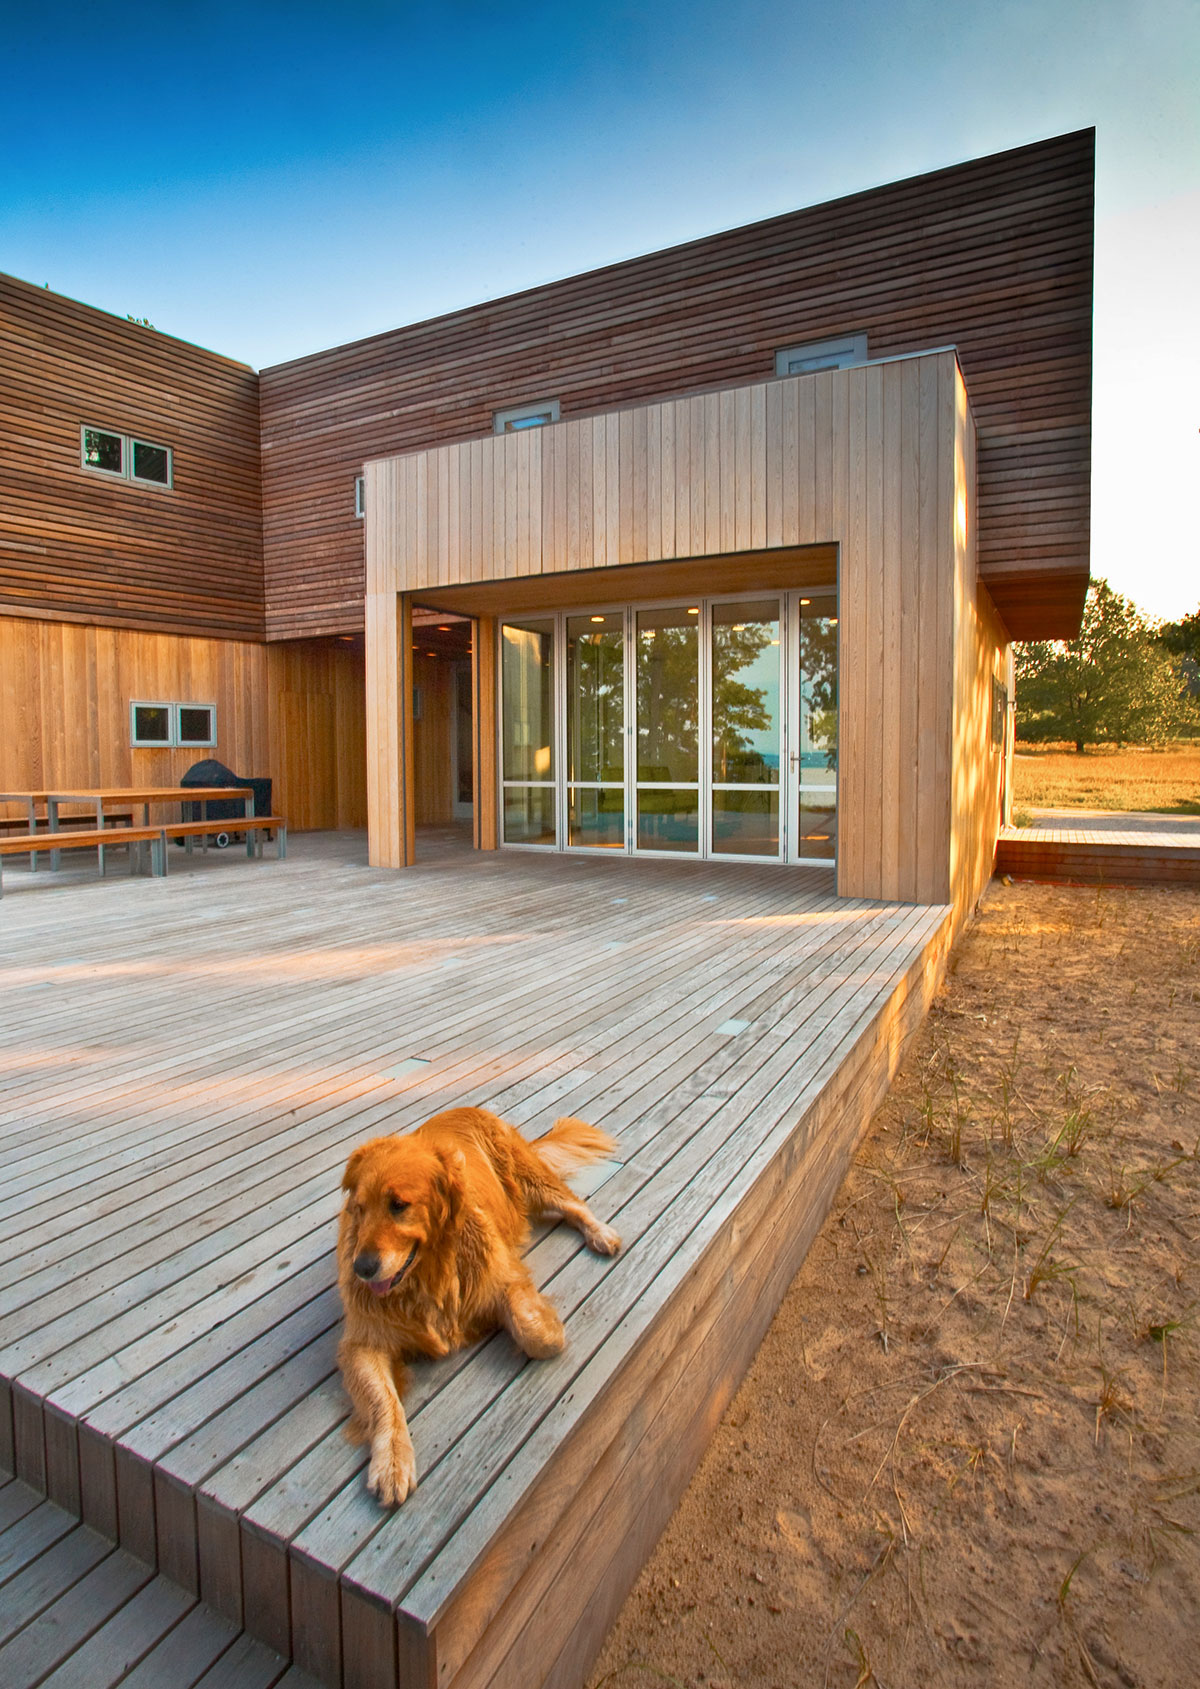 Wooden deck of the sustainable lake house project in Omena, Michigan designed by the architecture studio Danny Forster & Architecture